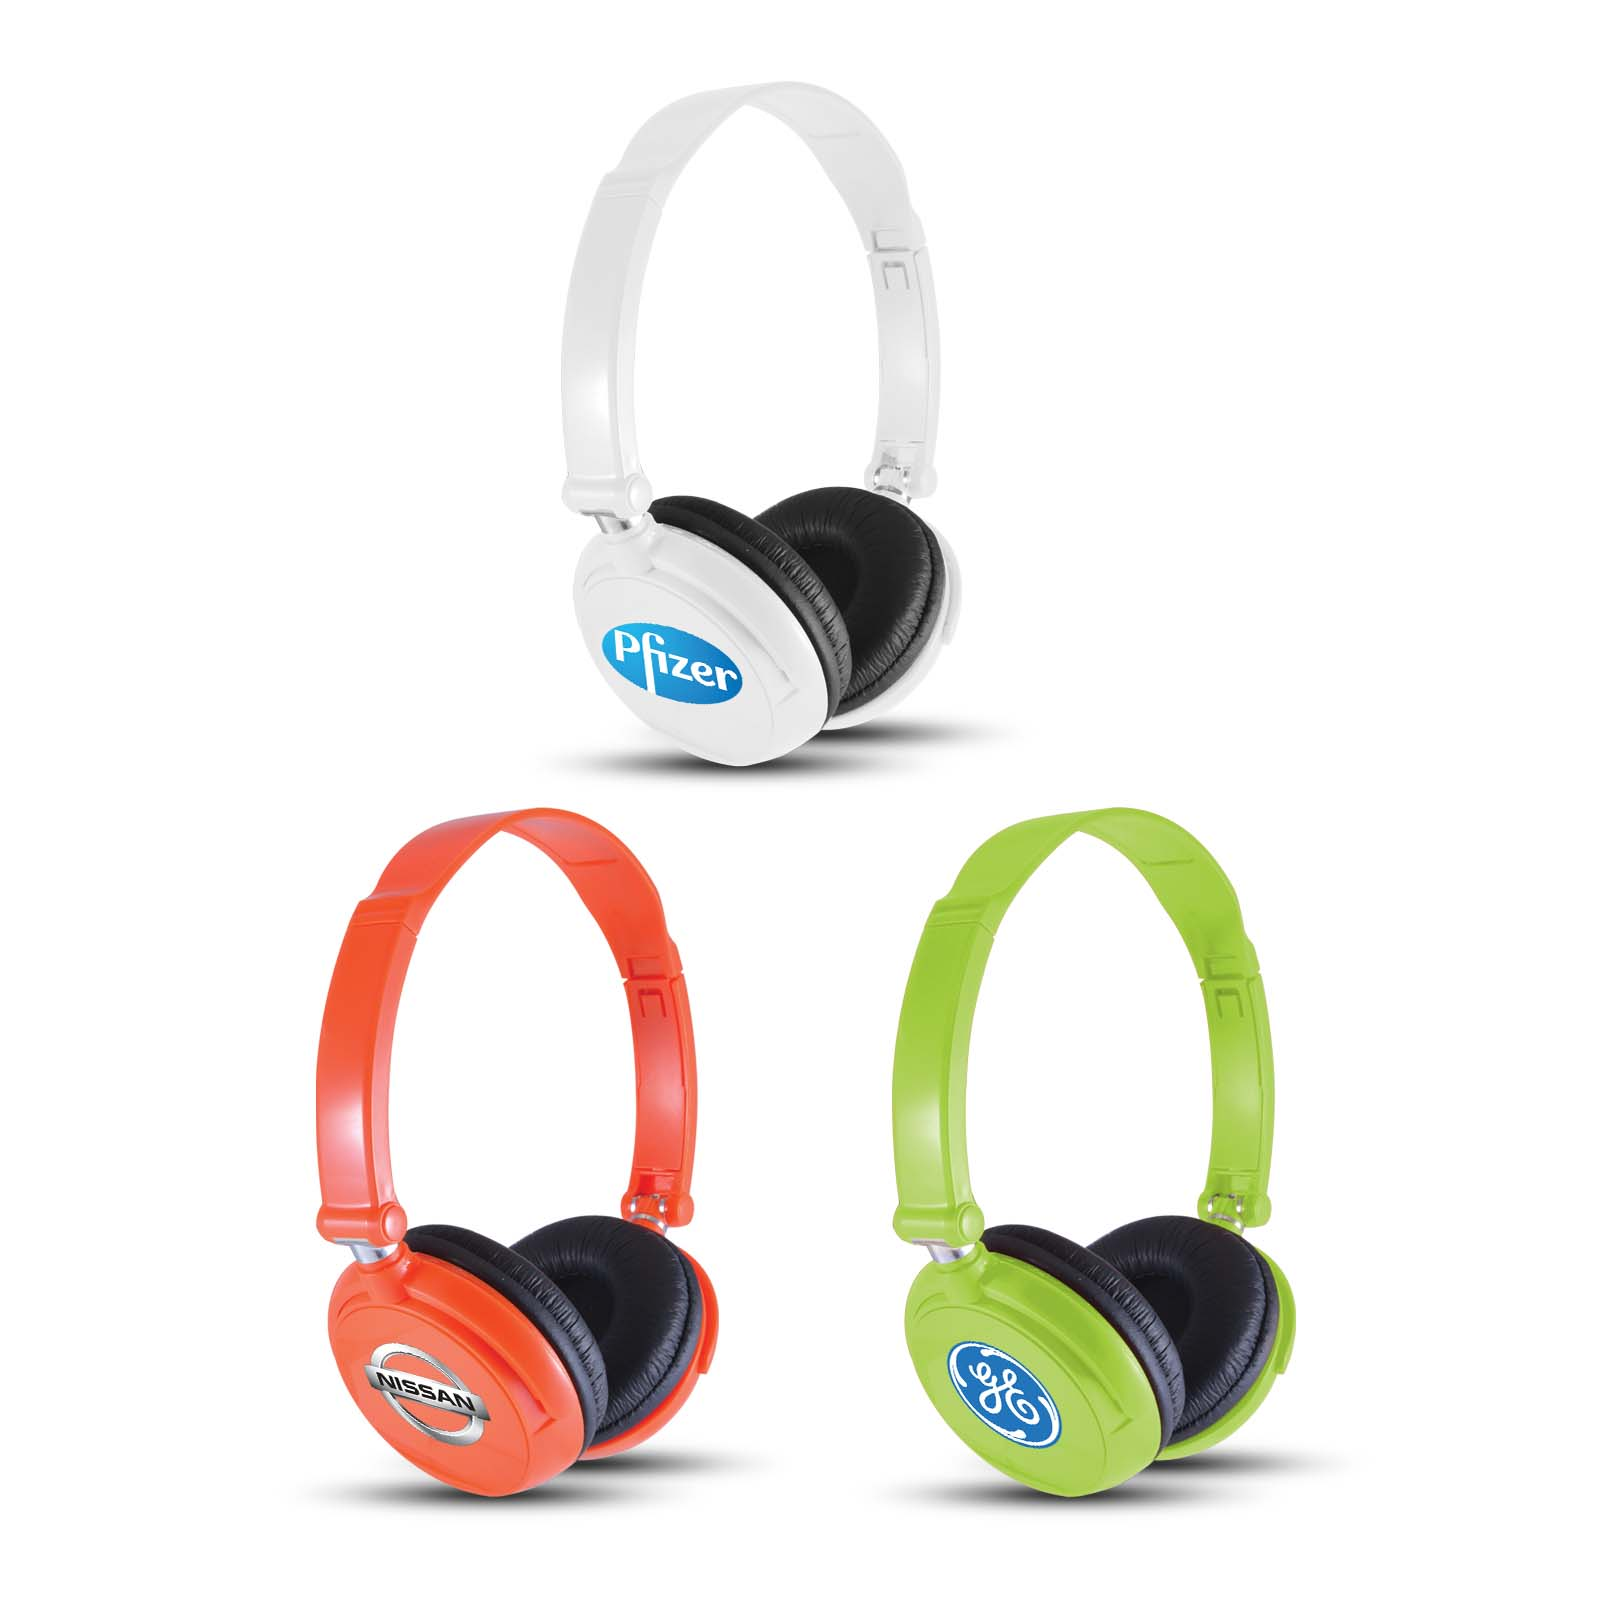 Thrust Wired Headphones - Includes a 1 colour printed logo